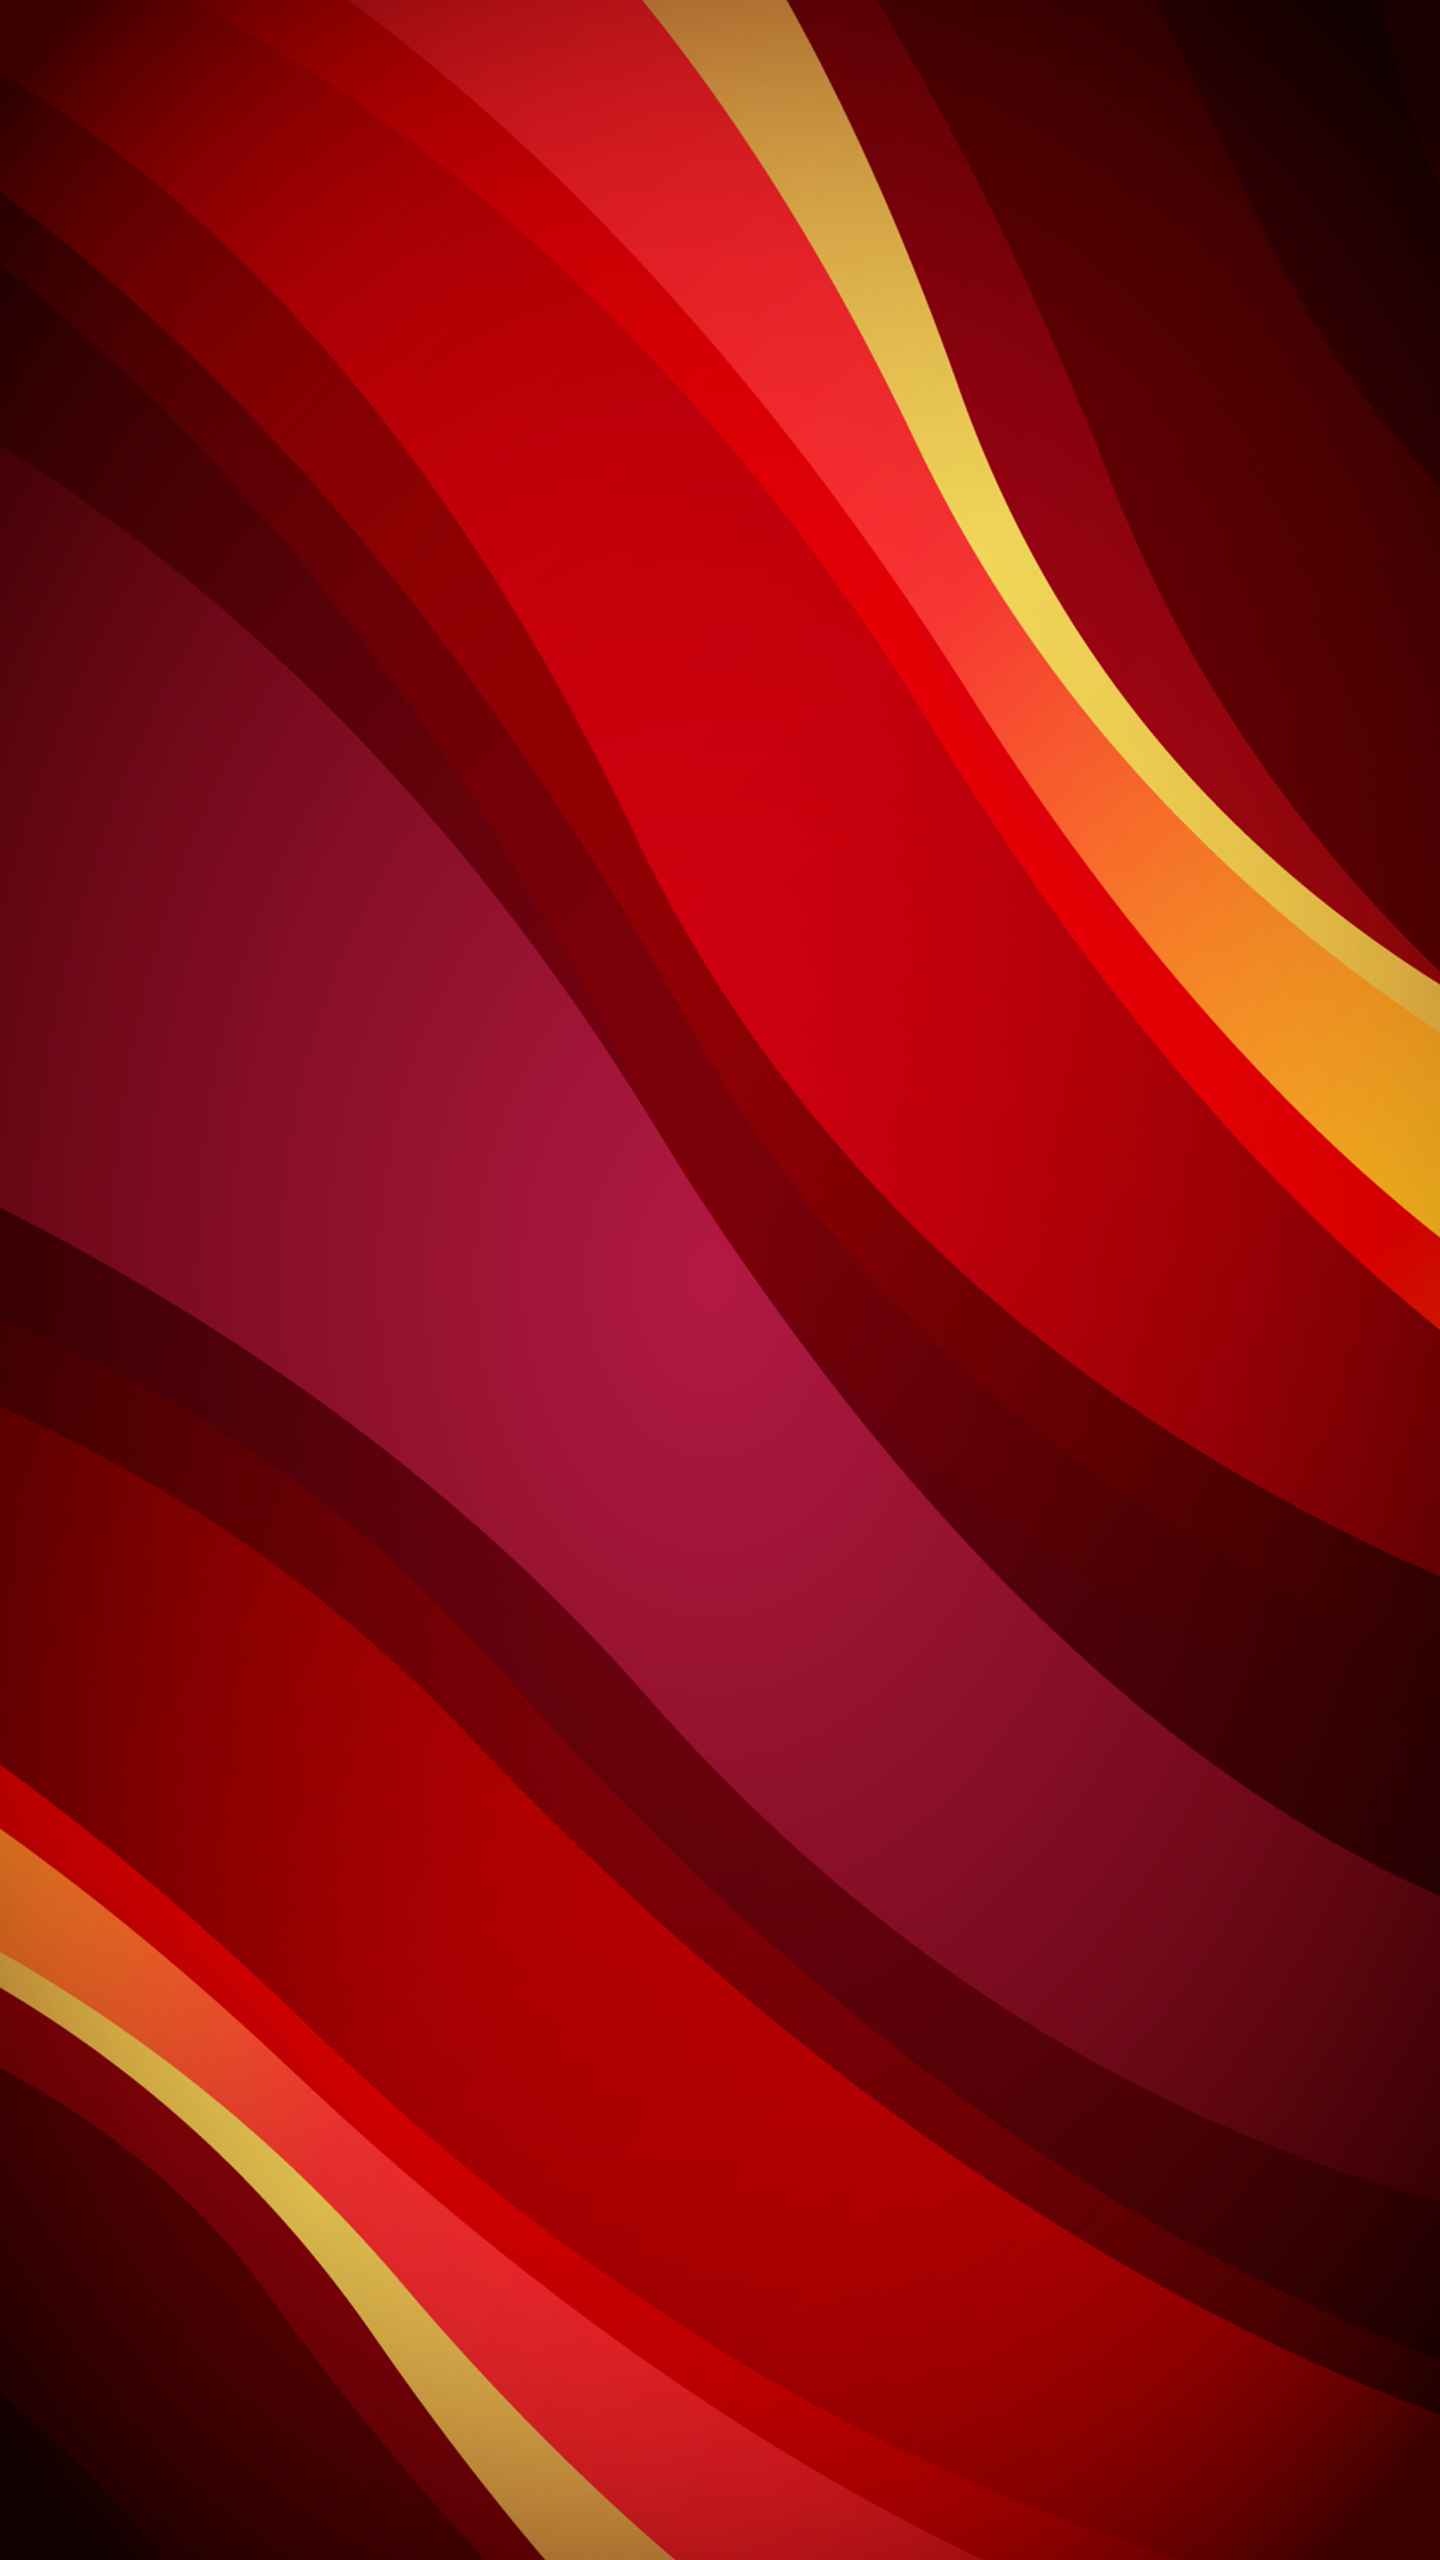 Best Wallpaper for iPhone 11 Pro Max in 2020